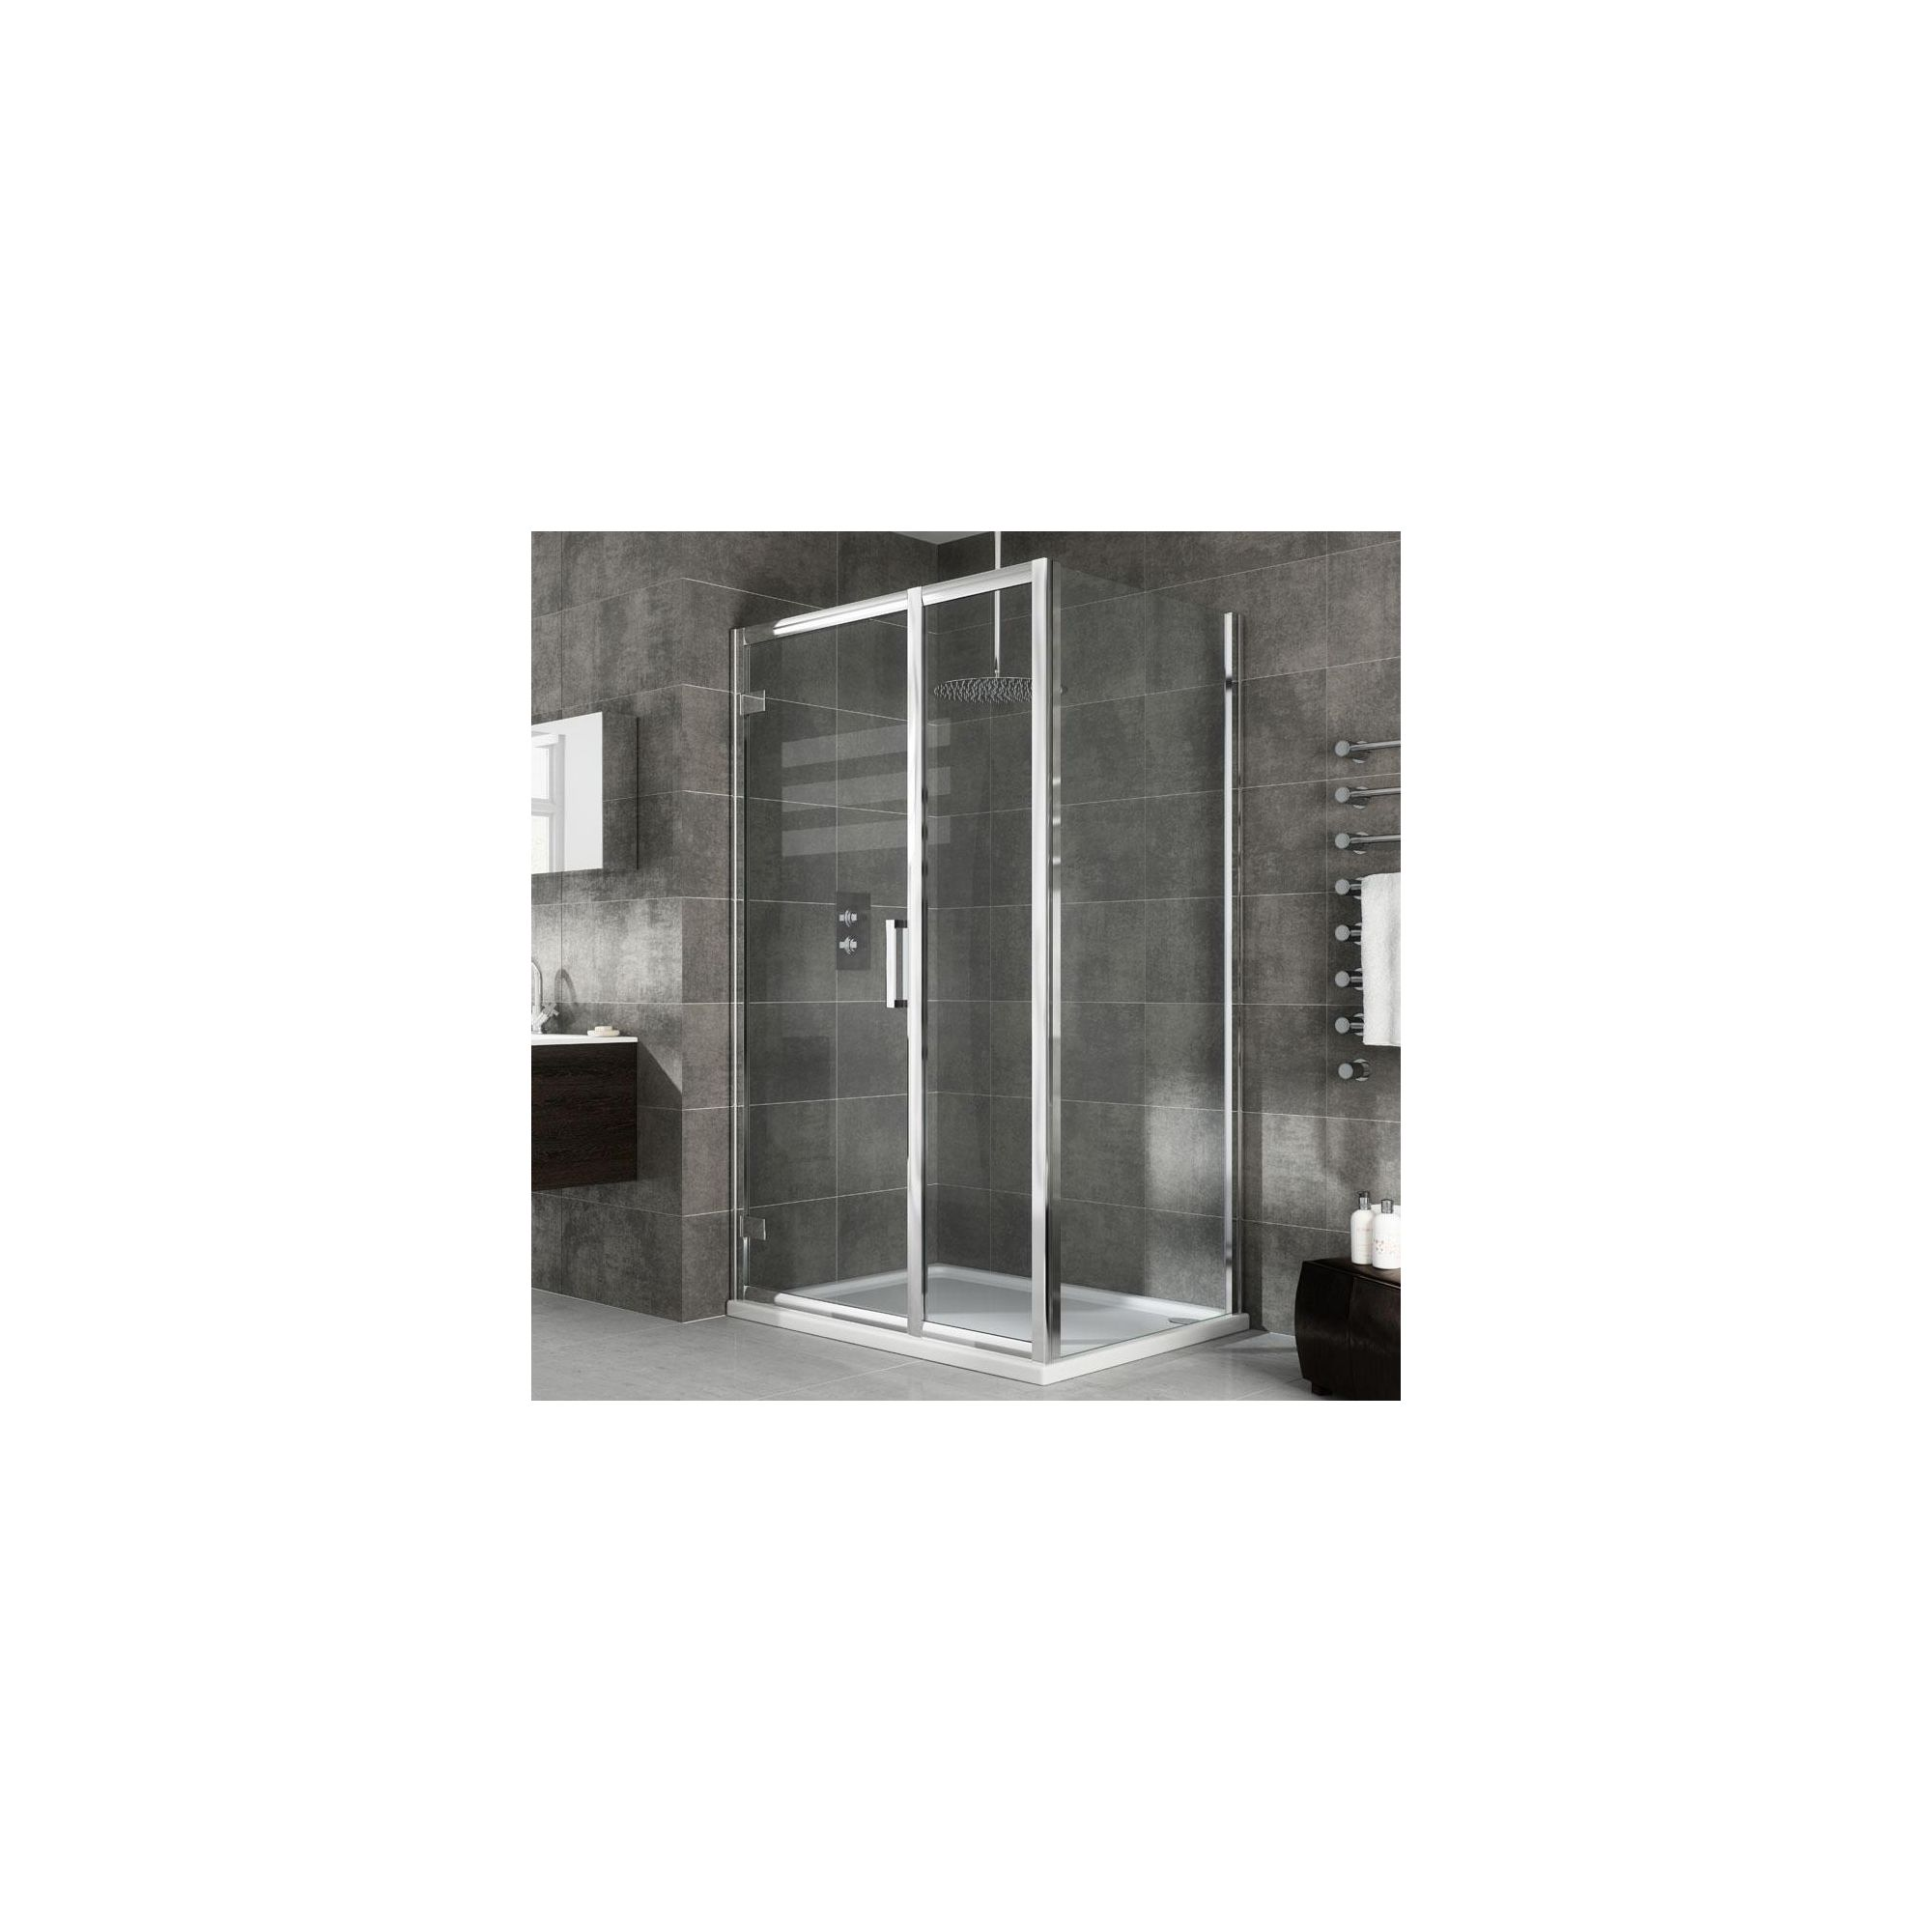 Elemis Eternity Inline Hinged Door Shower Enclosure, 1200mm x 900mm, 8mm Glass, Low Profile Tray at Tesco Direct